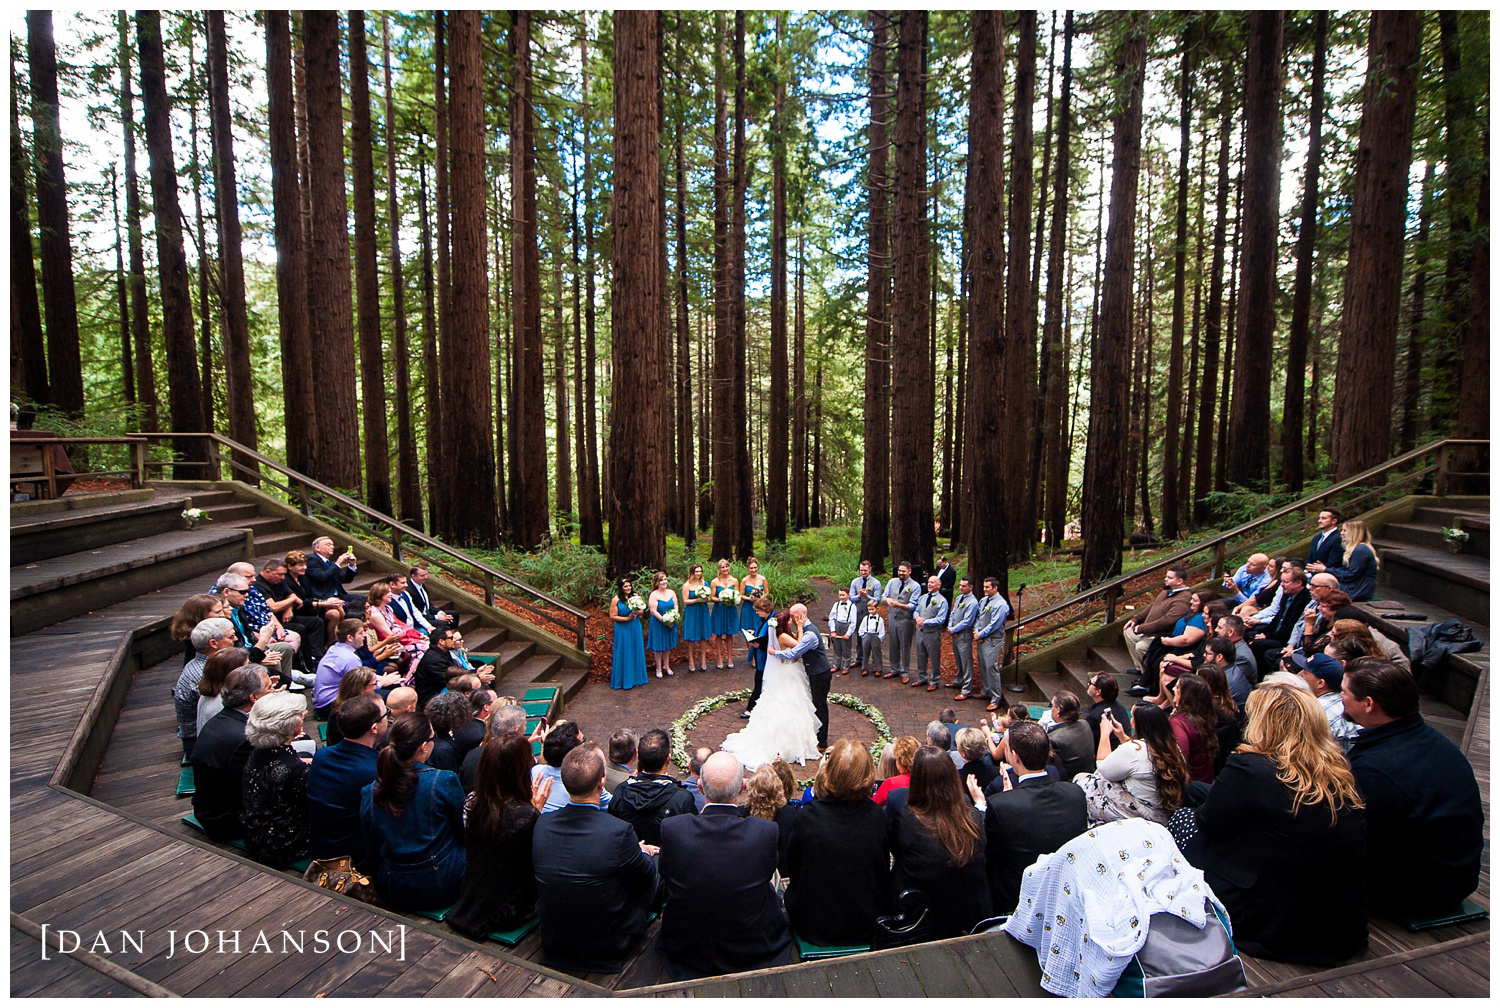 Cassia + Dustin - Another majestic wedding in the Redwood Groves ...